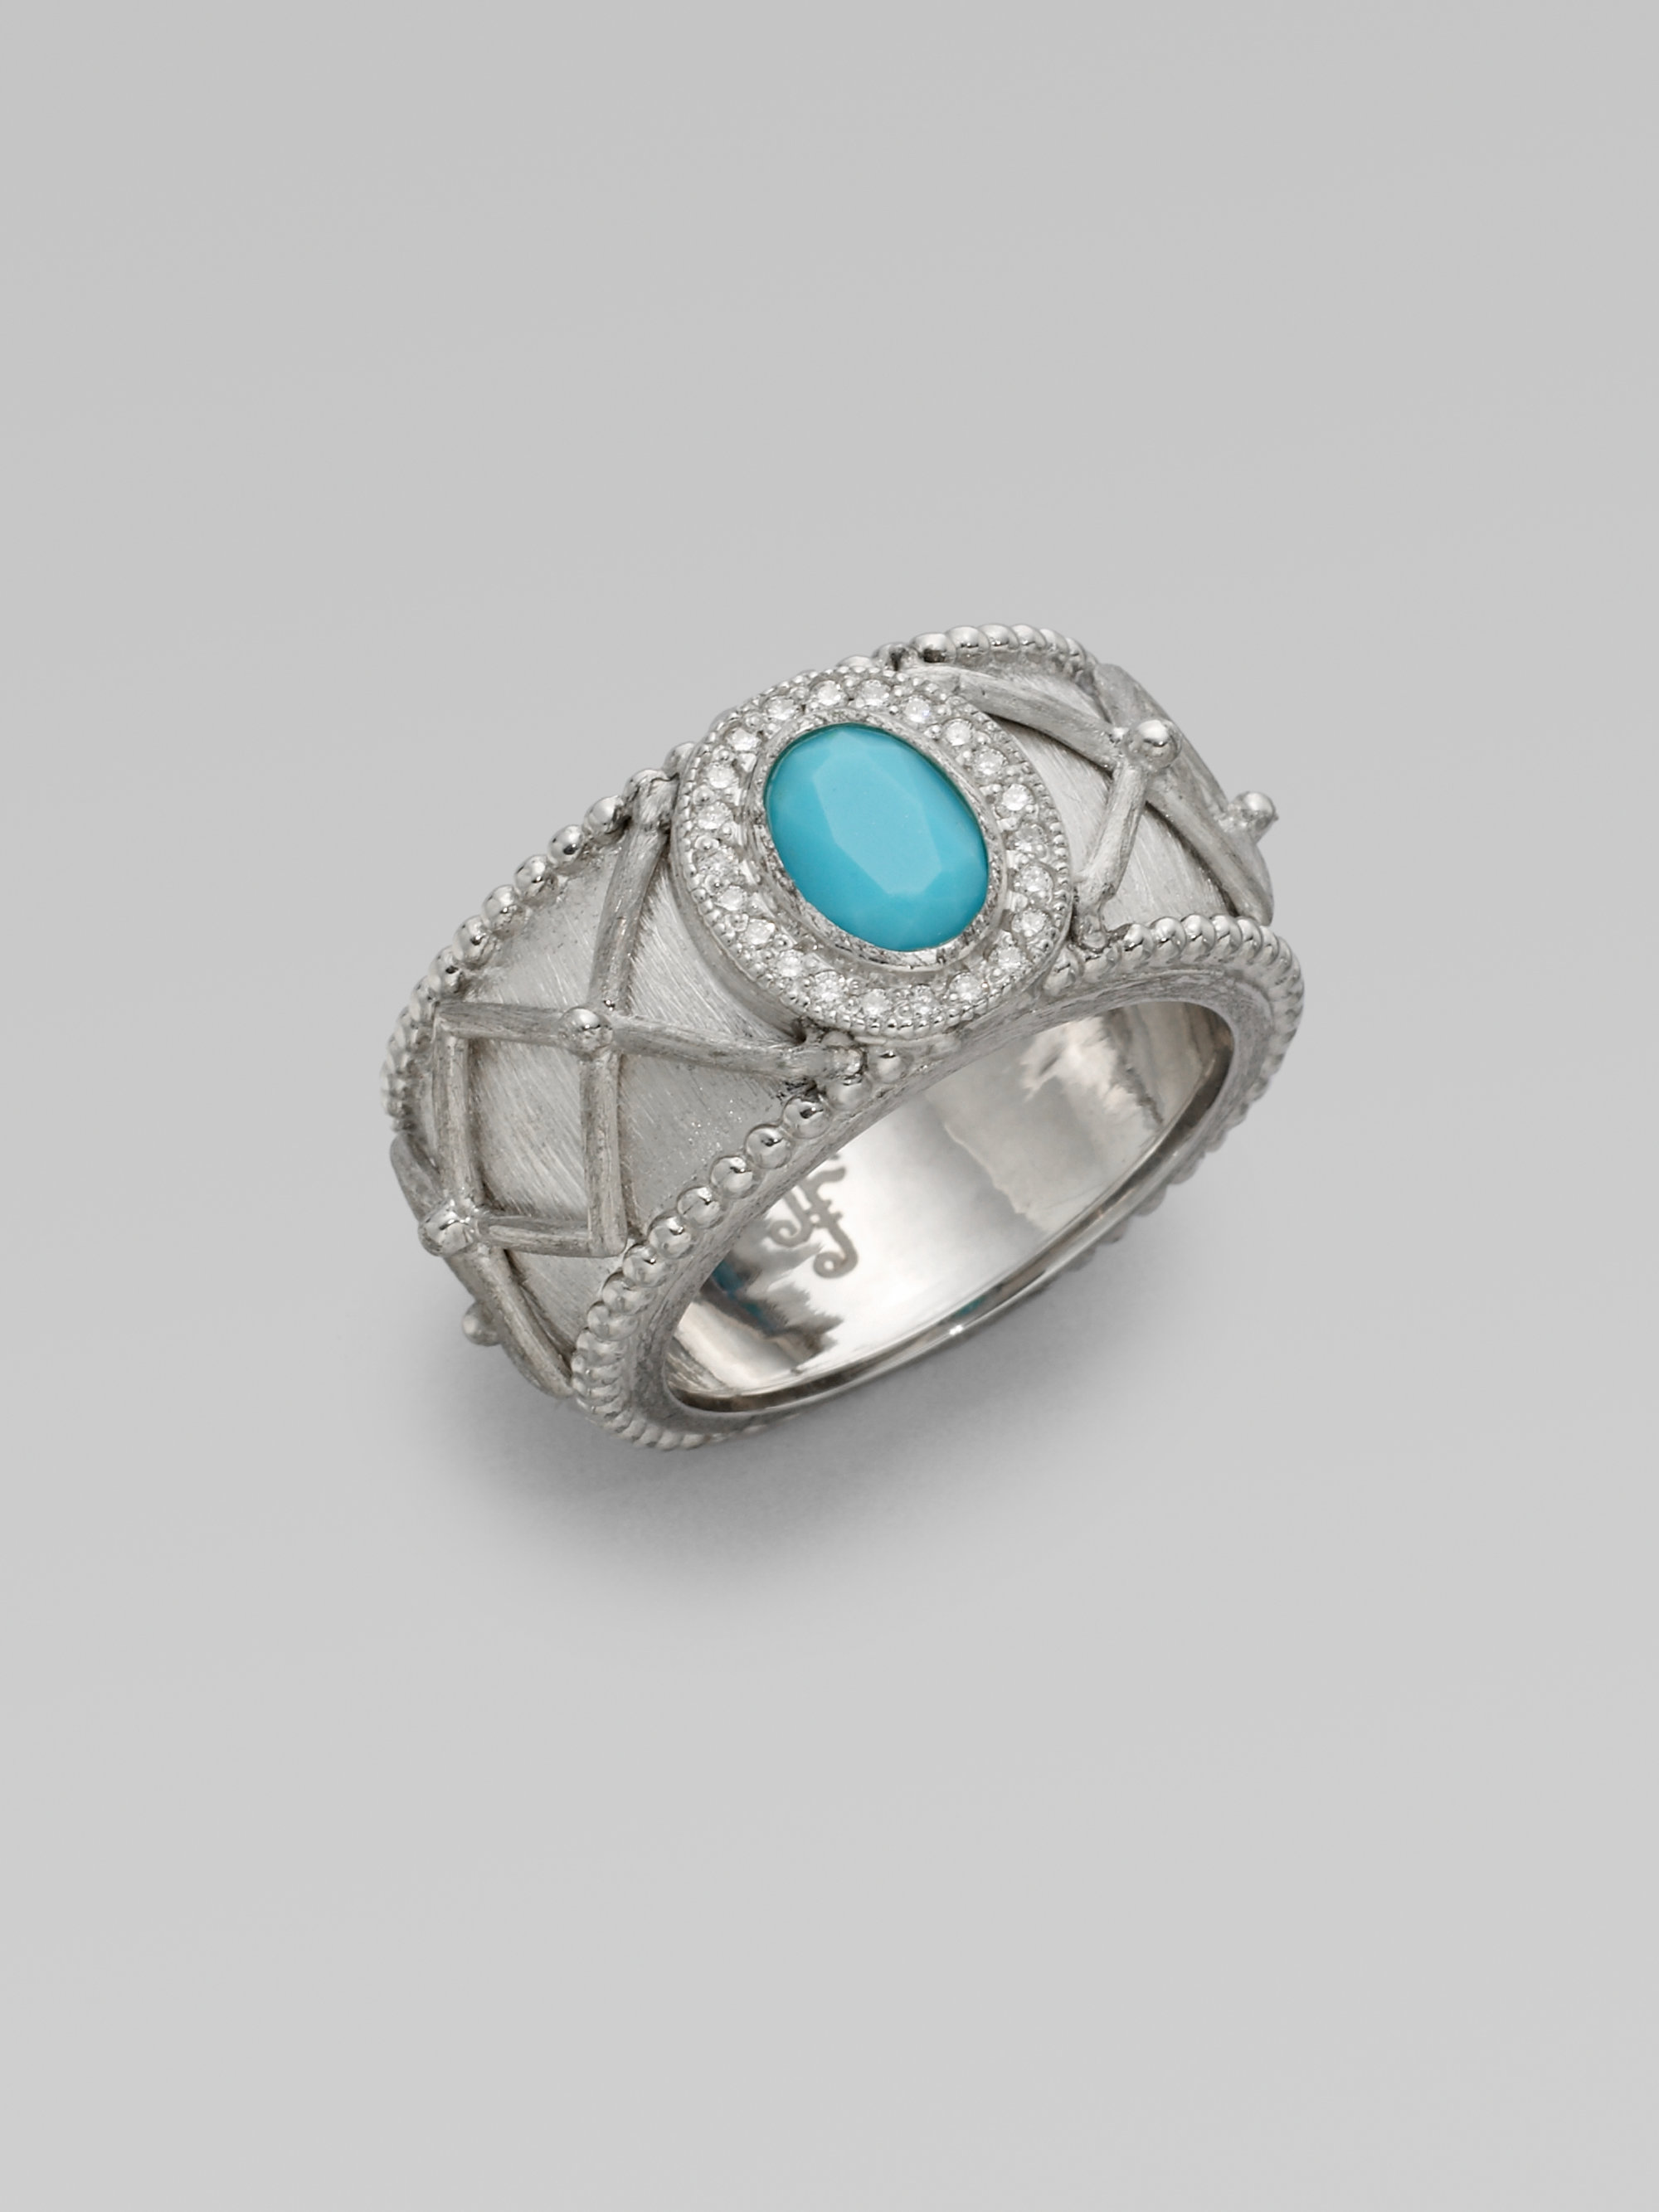 jude frances turquoise sterling silver ring in